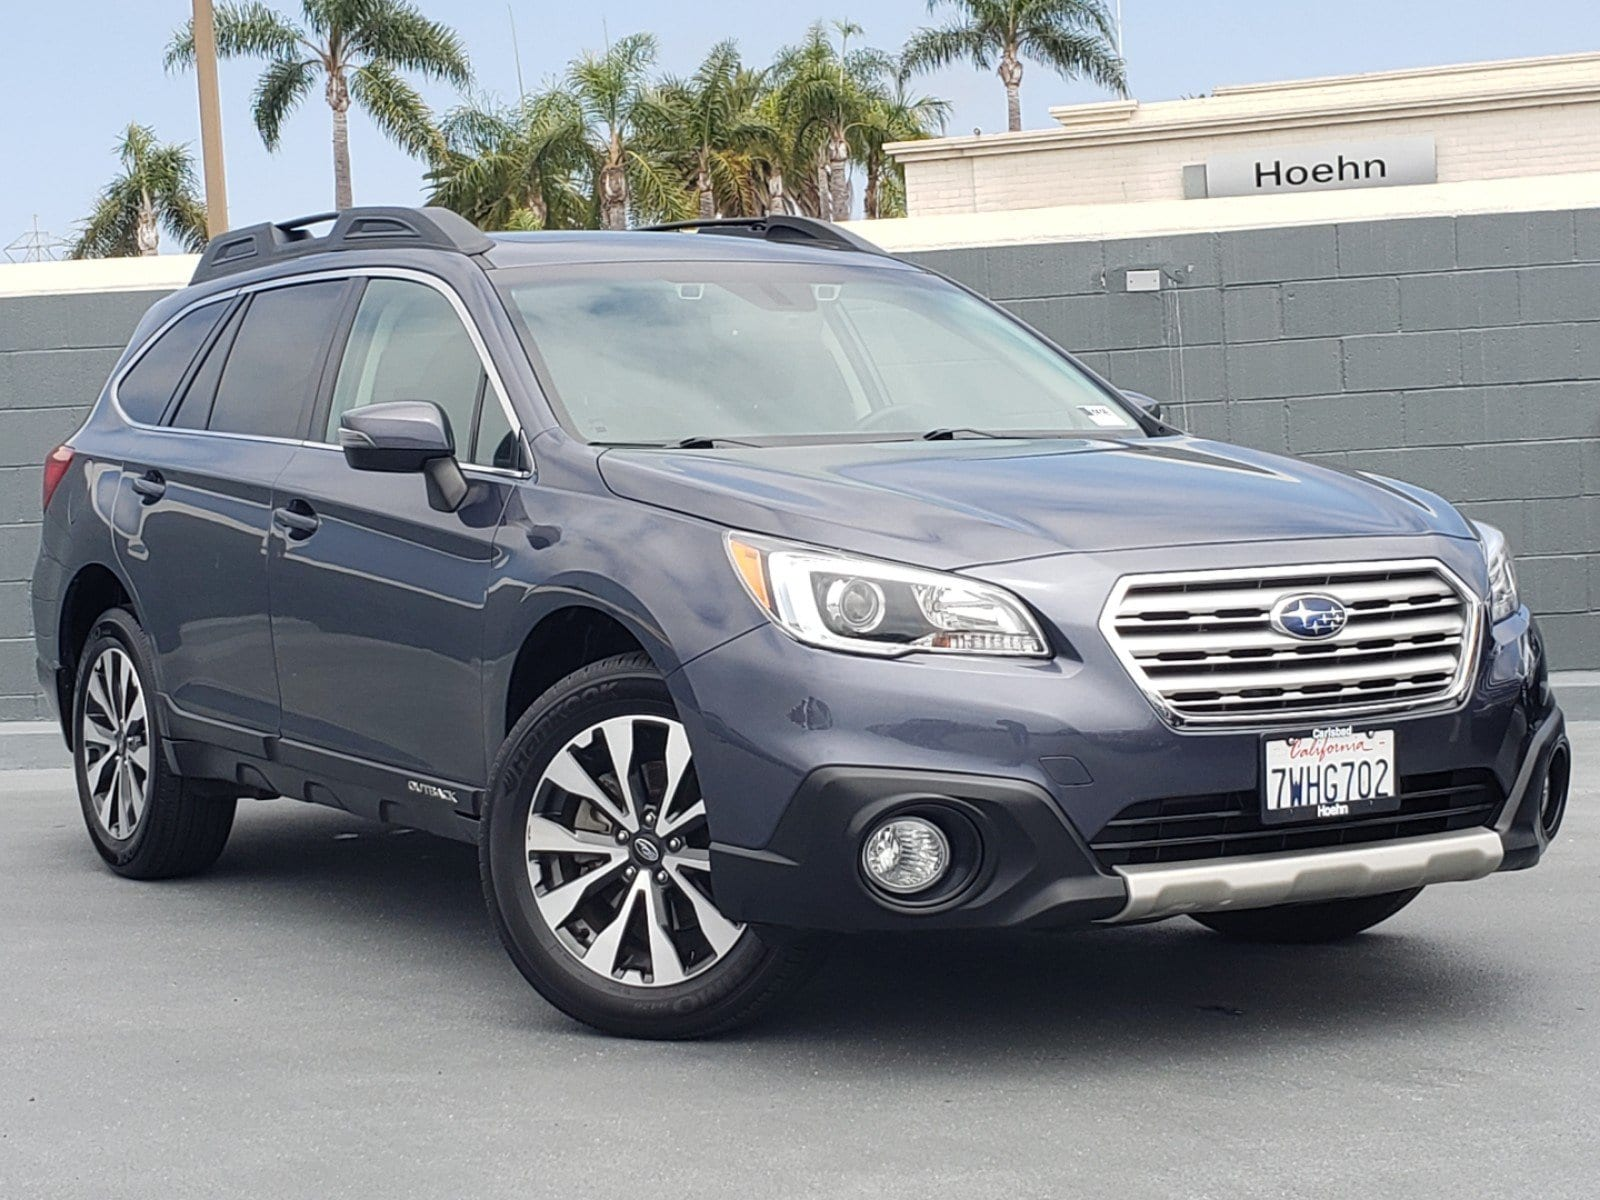 Pre-Owned 2017 Subaru Outback 3.6R Limited with